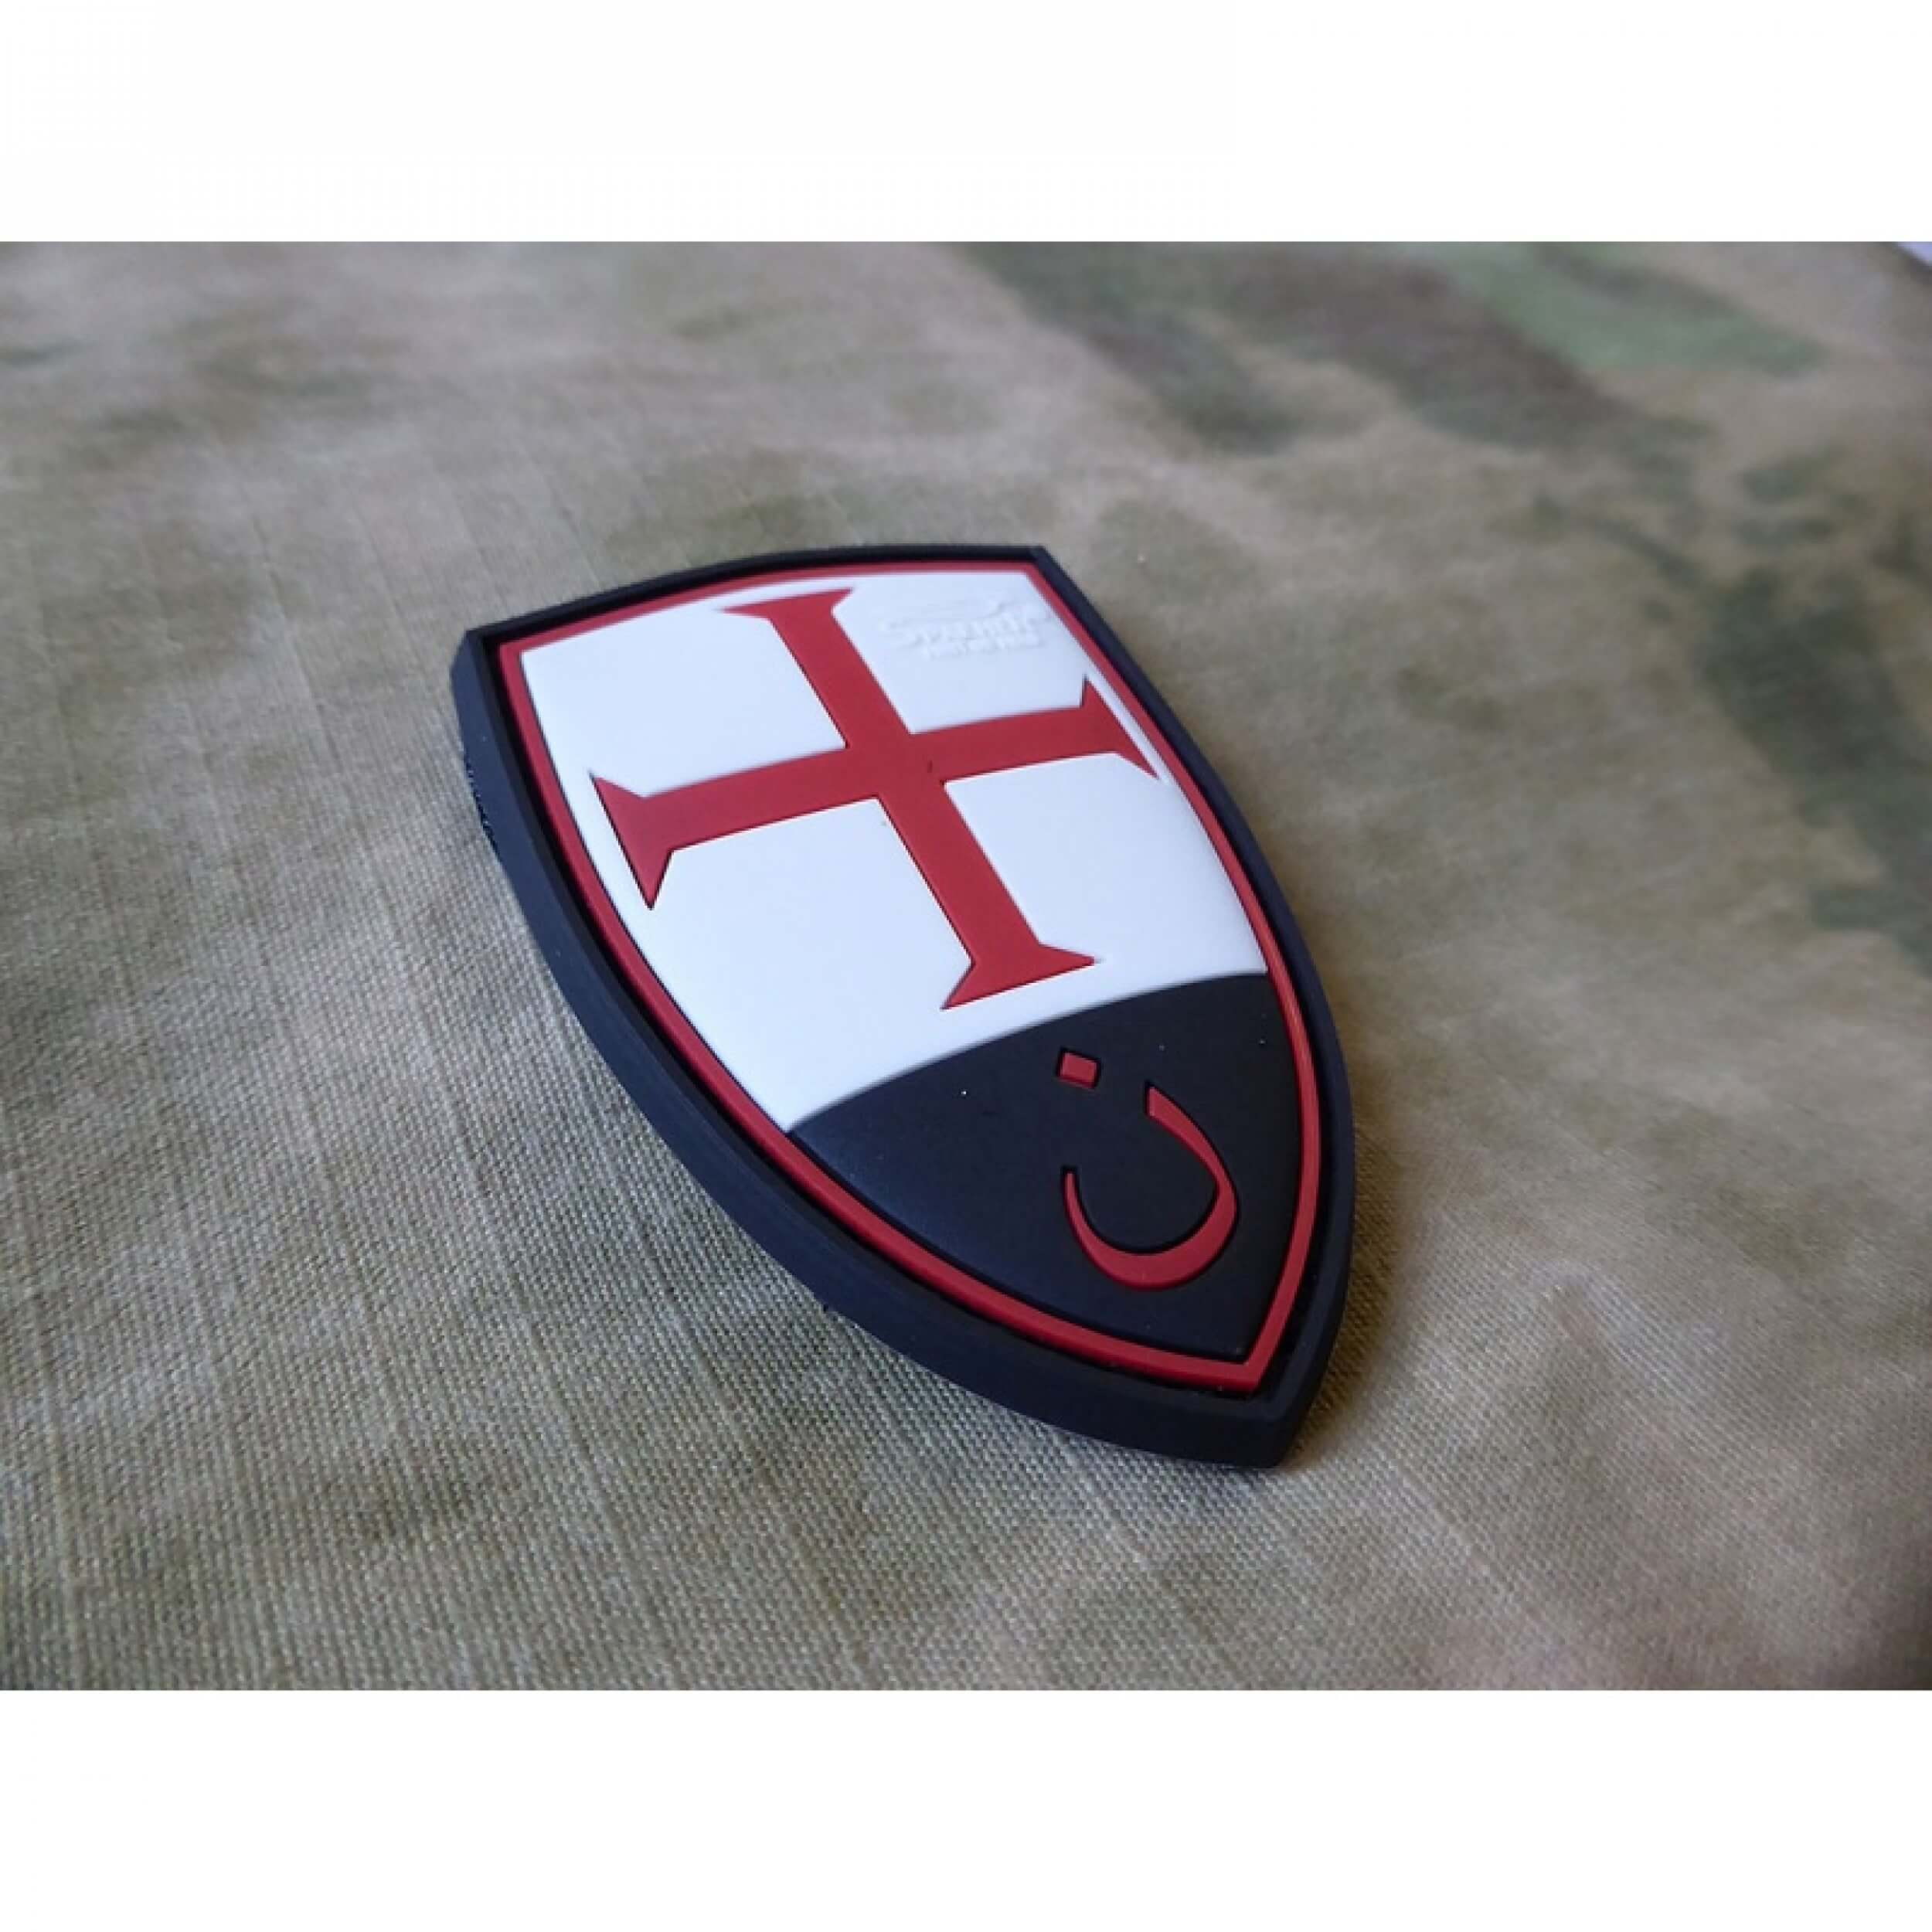 JTG Crusader Shield Patch, fullcolor / 3D Rubber Patch